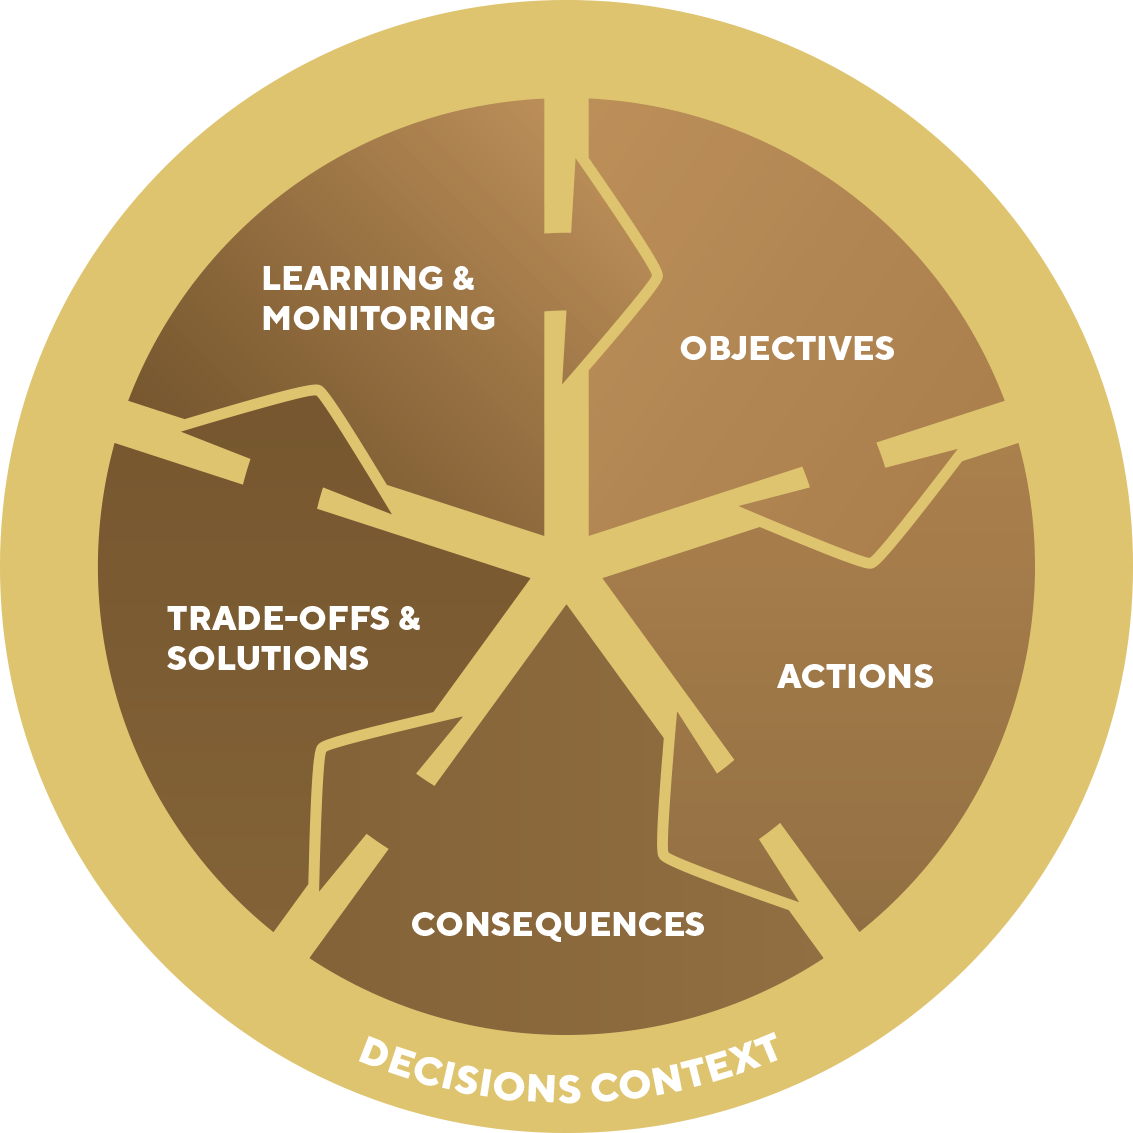 Figure 1 The decision analysis process